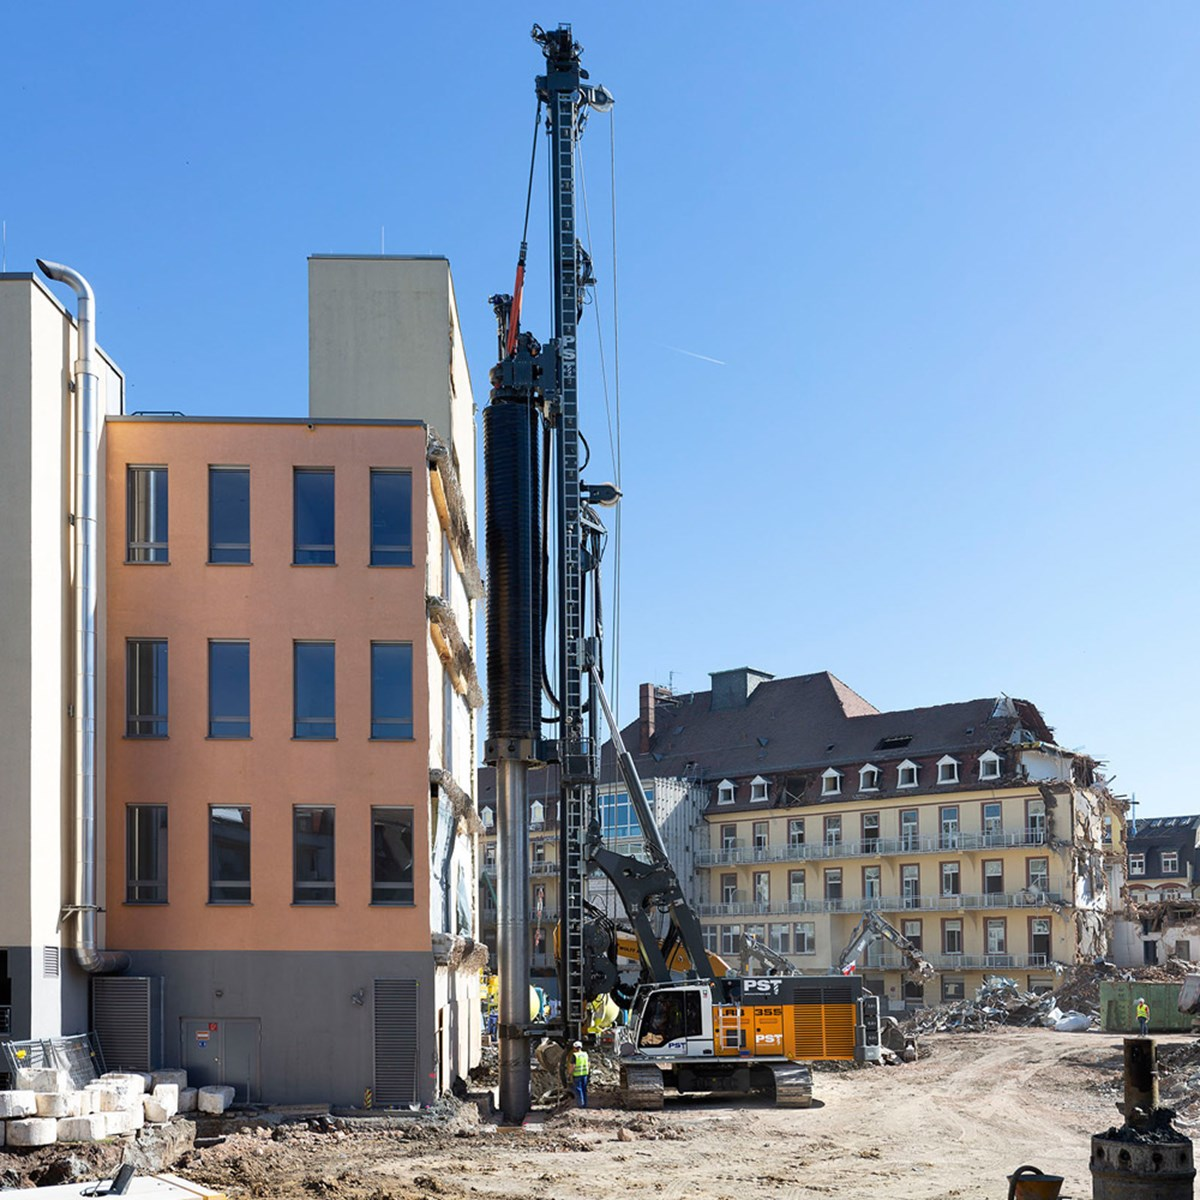 liebherr-lrb-355-piling-and-drilling-rig-double-rotary-drilling-7-1.jpg